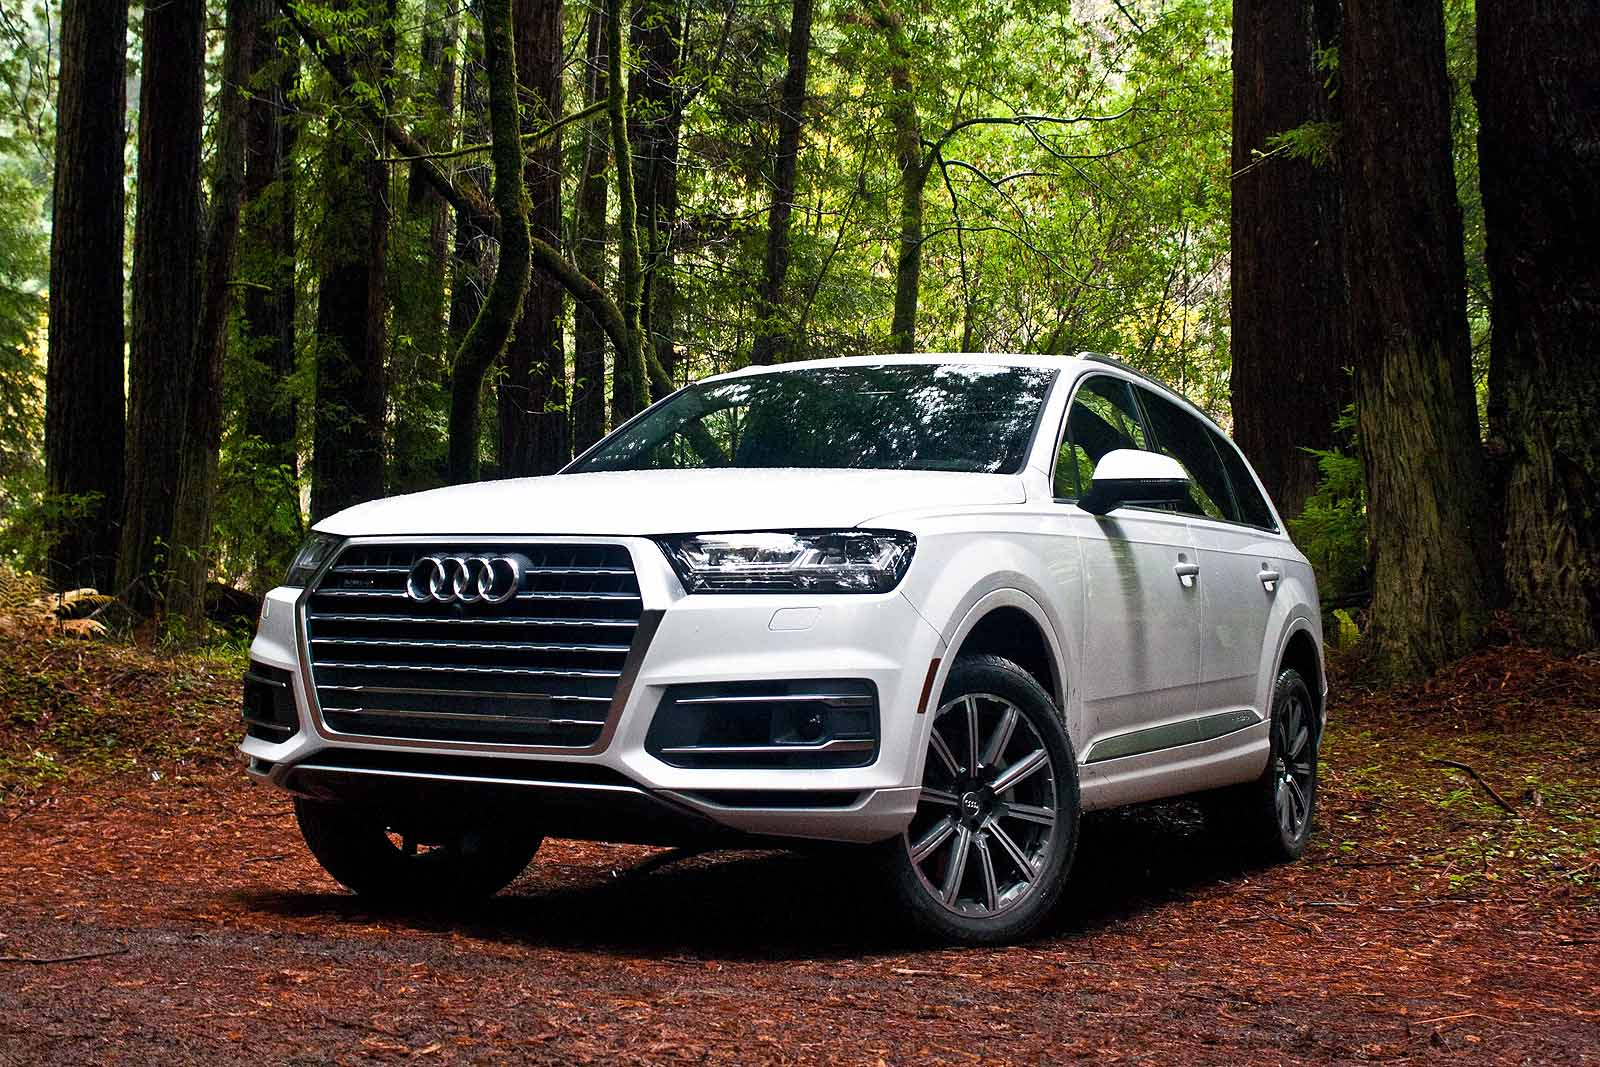 2017 audi q7 review news. Black Bedroom Furniture Sets. Home Design Ideas